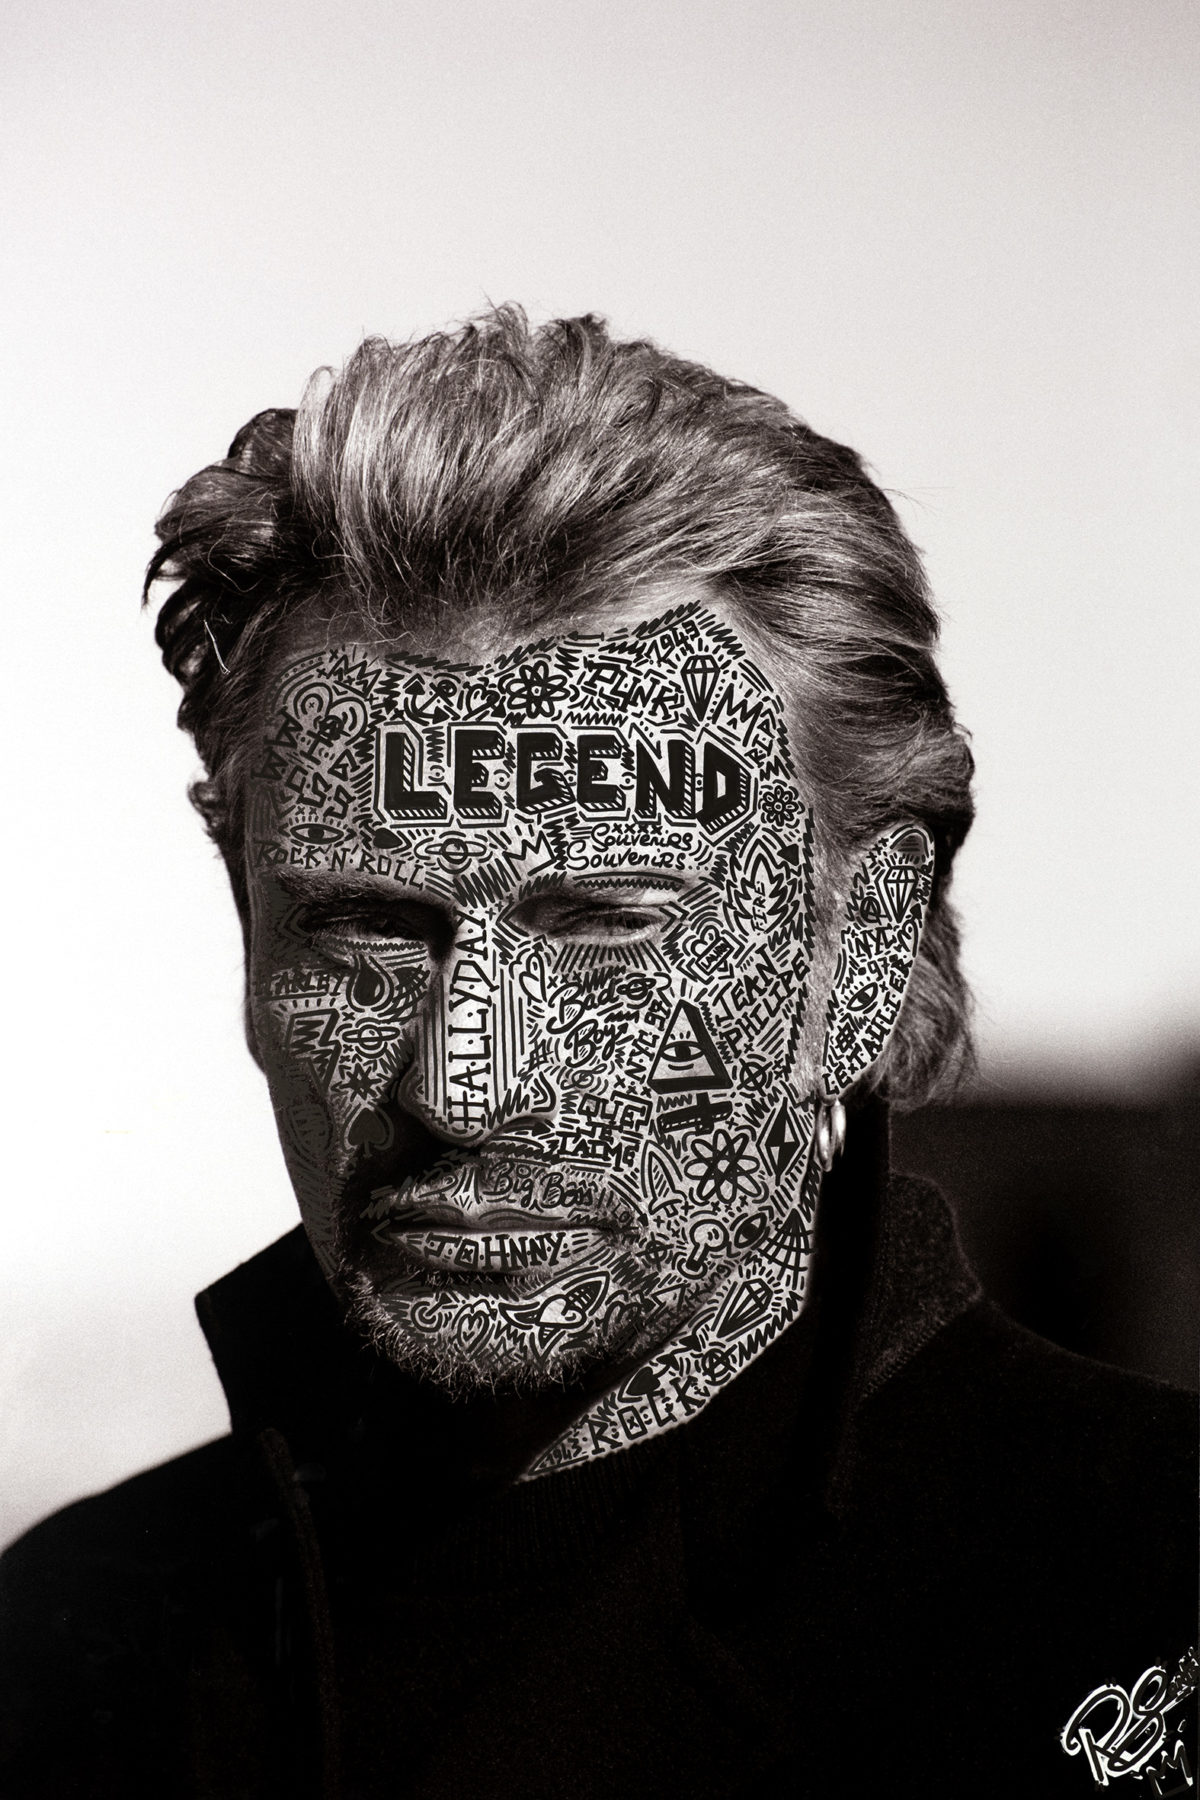 LEGEND BY RS